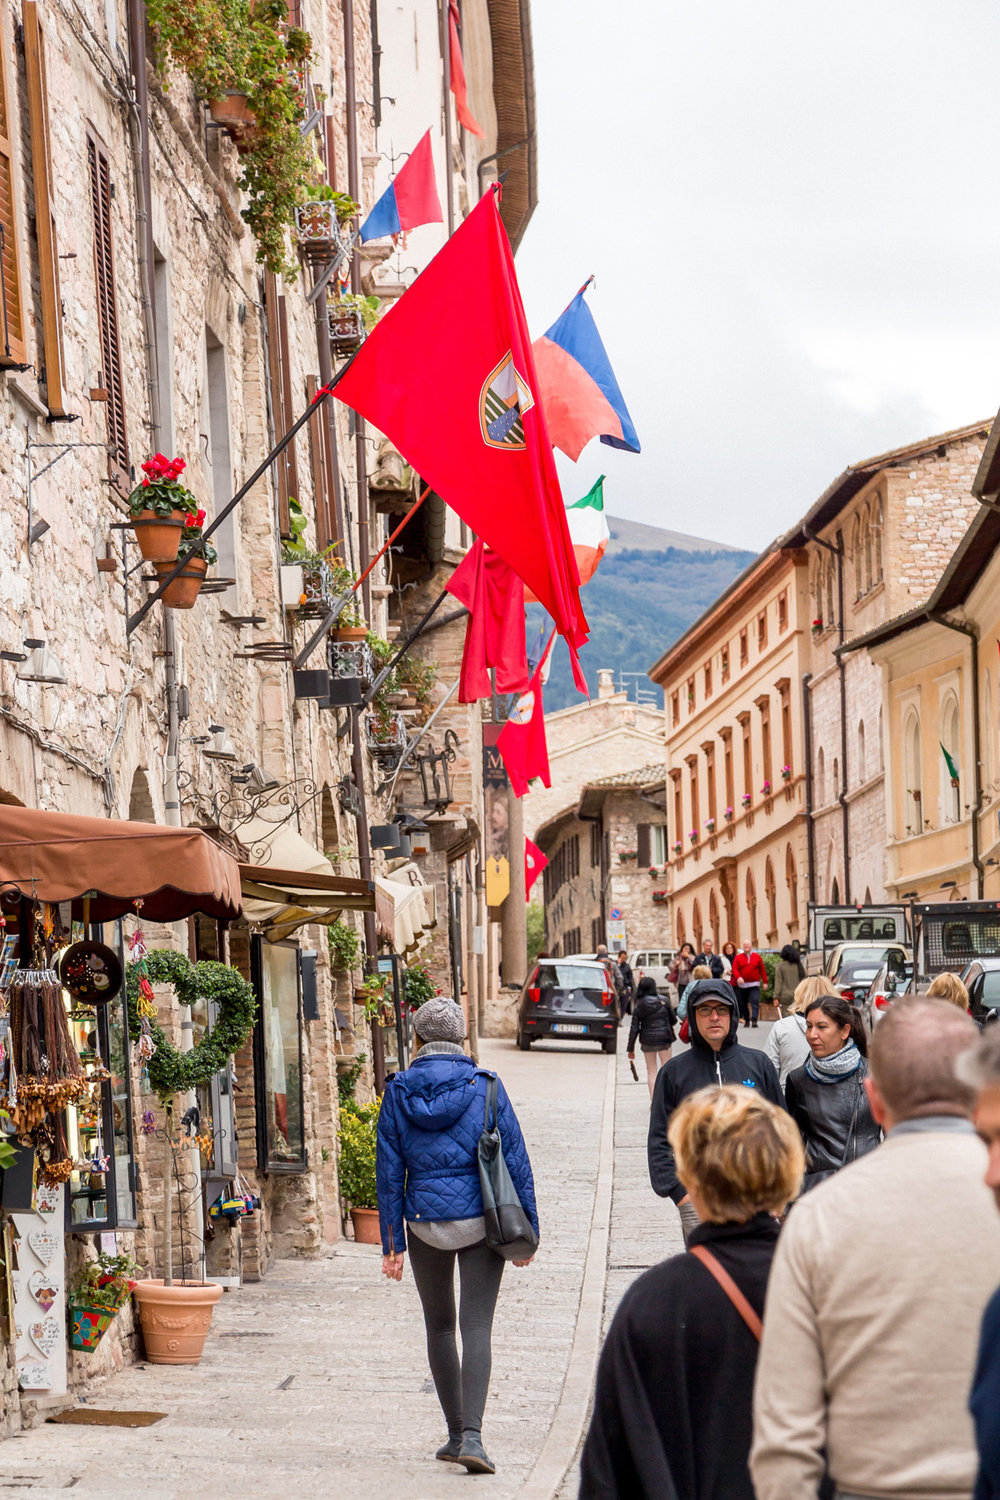 A day in Assisi, Umbria